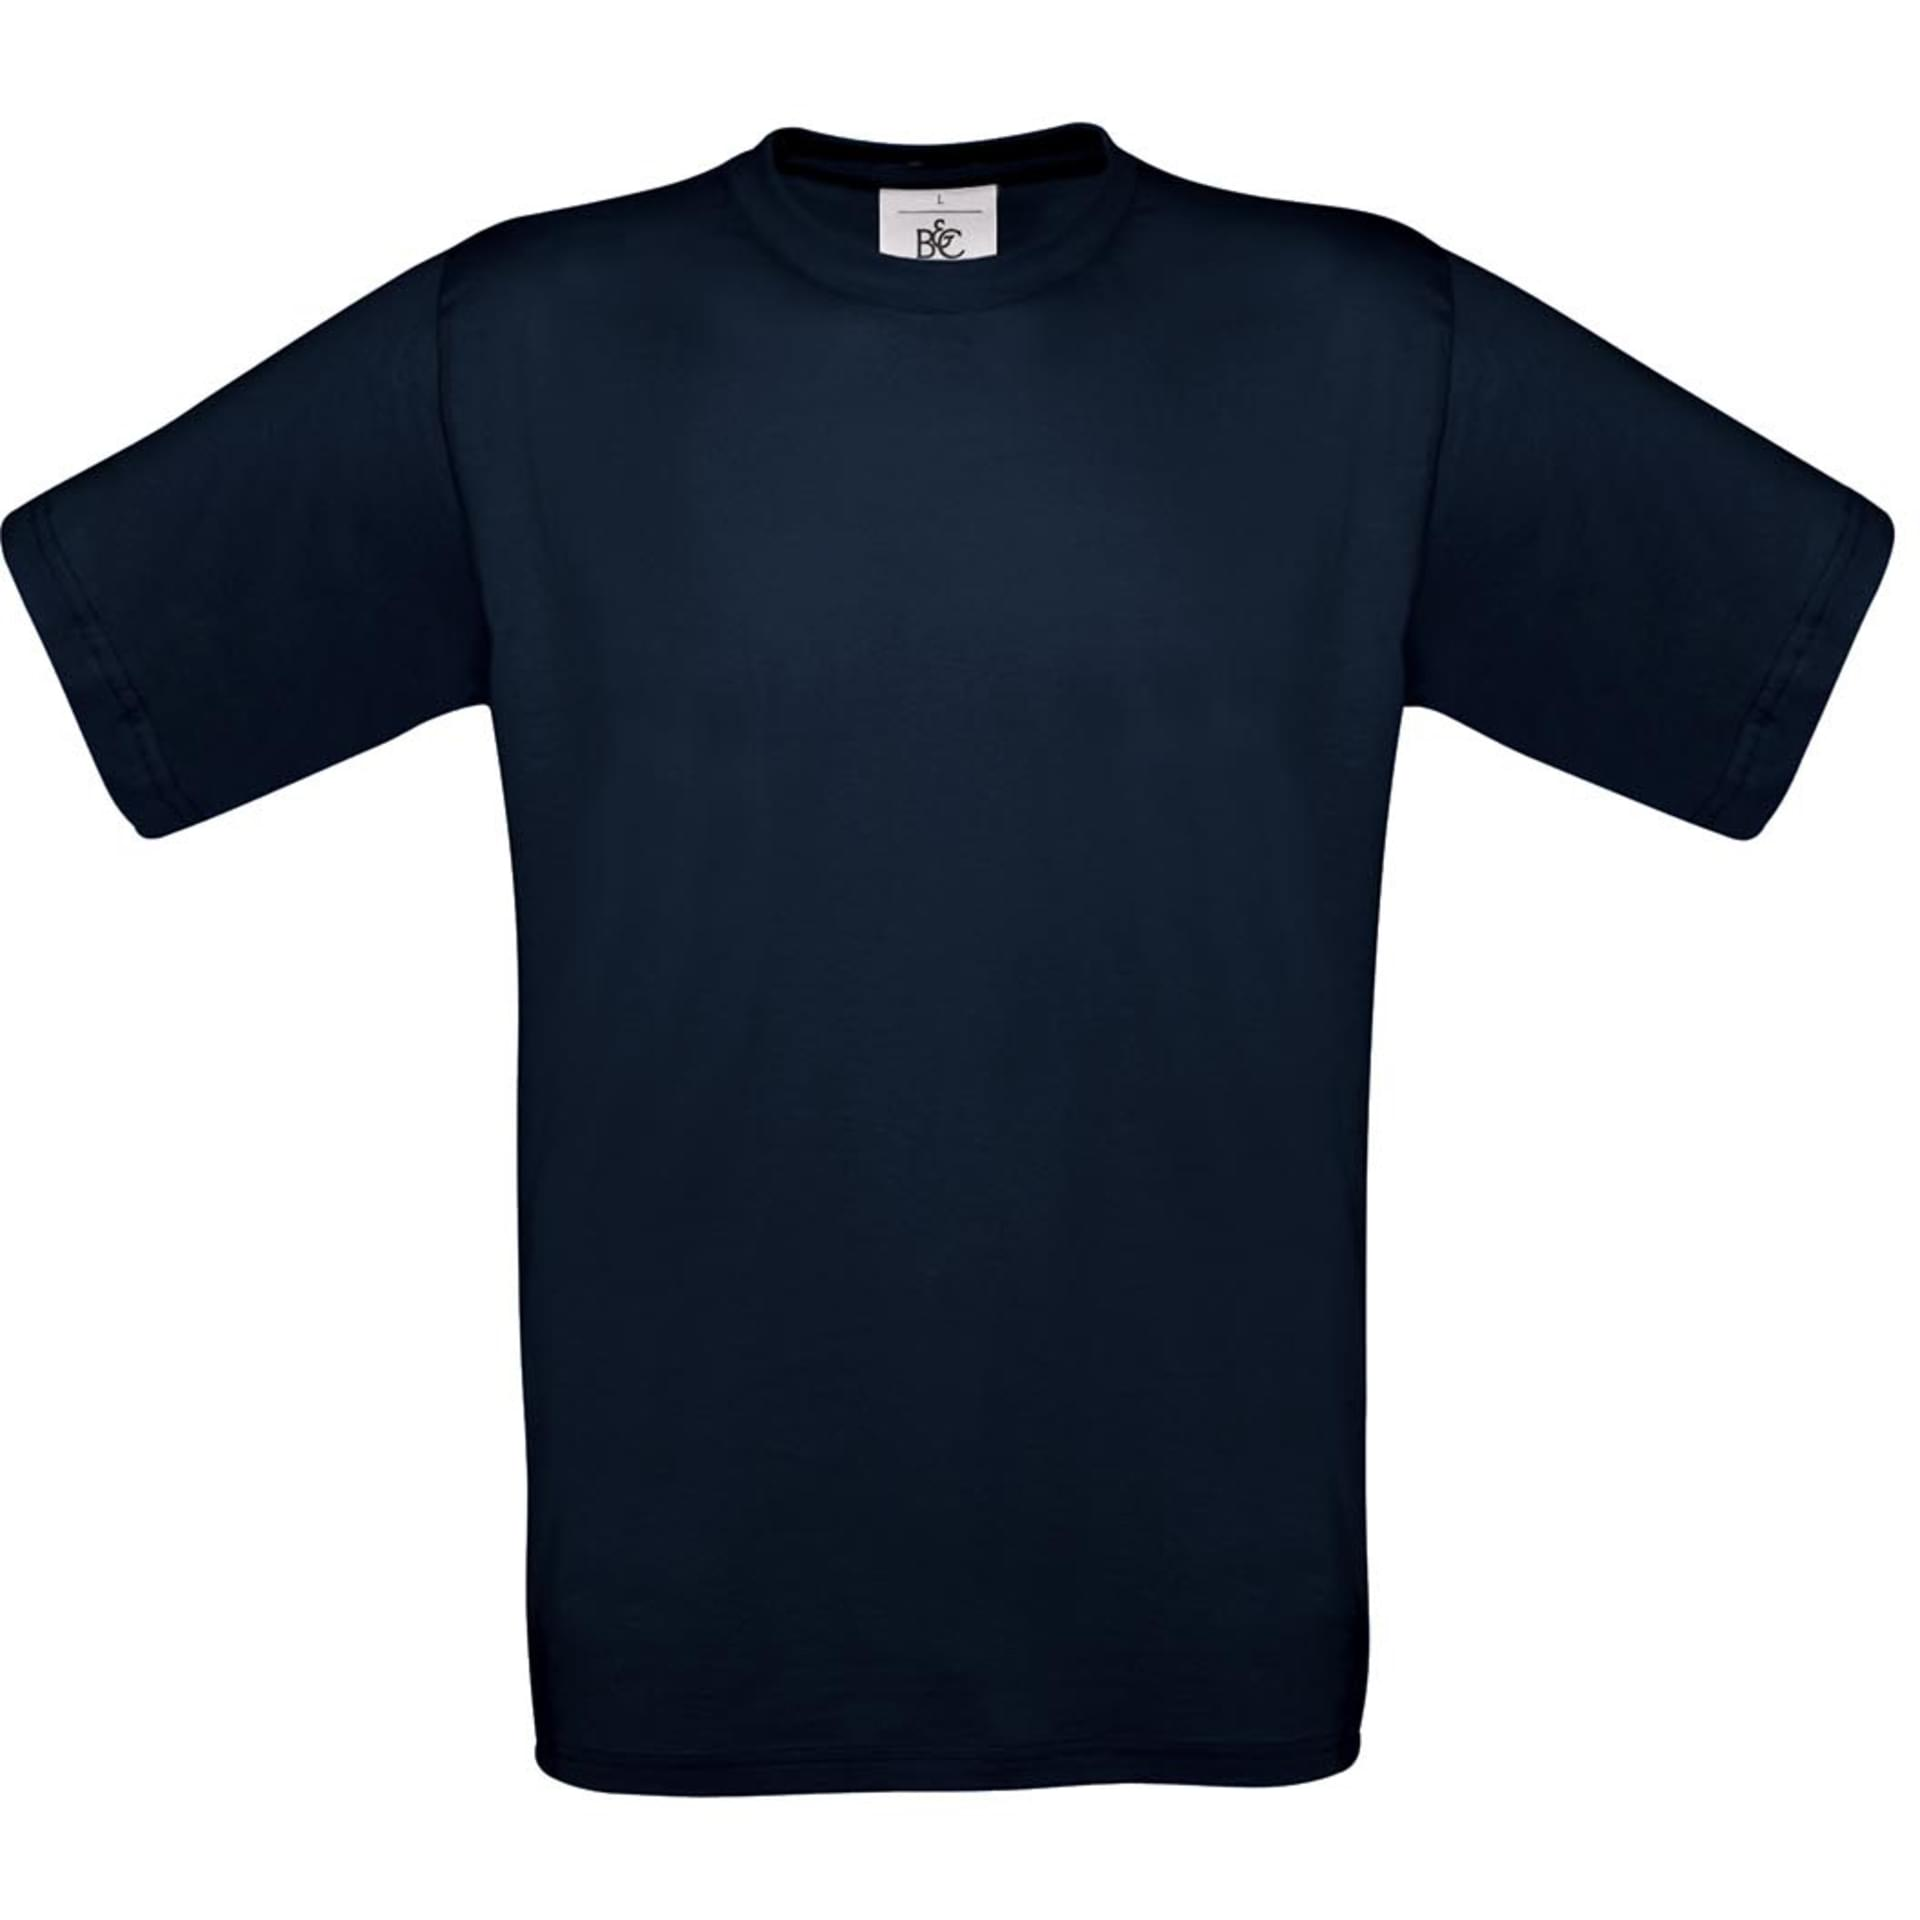 tee shirt personnalis exact 150 b c navy. Black Bedroom Furniture Sets. Home Design Ideas